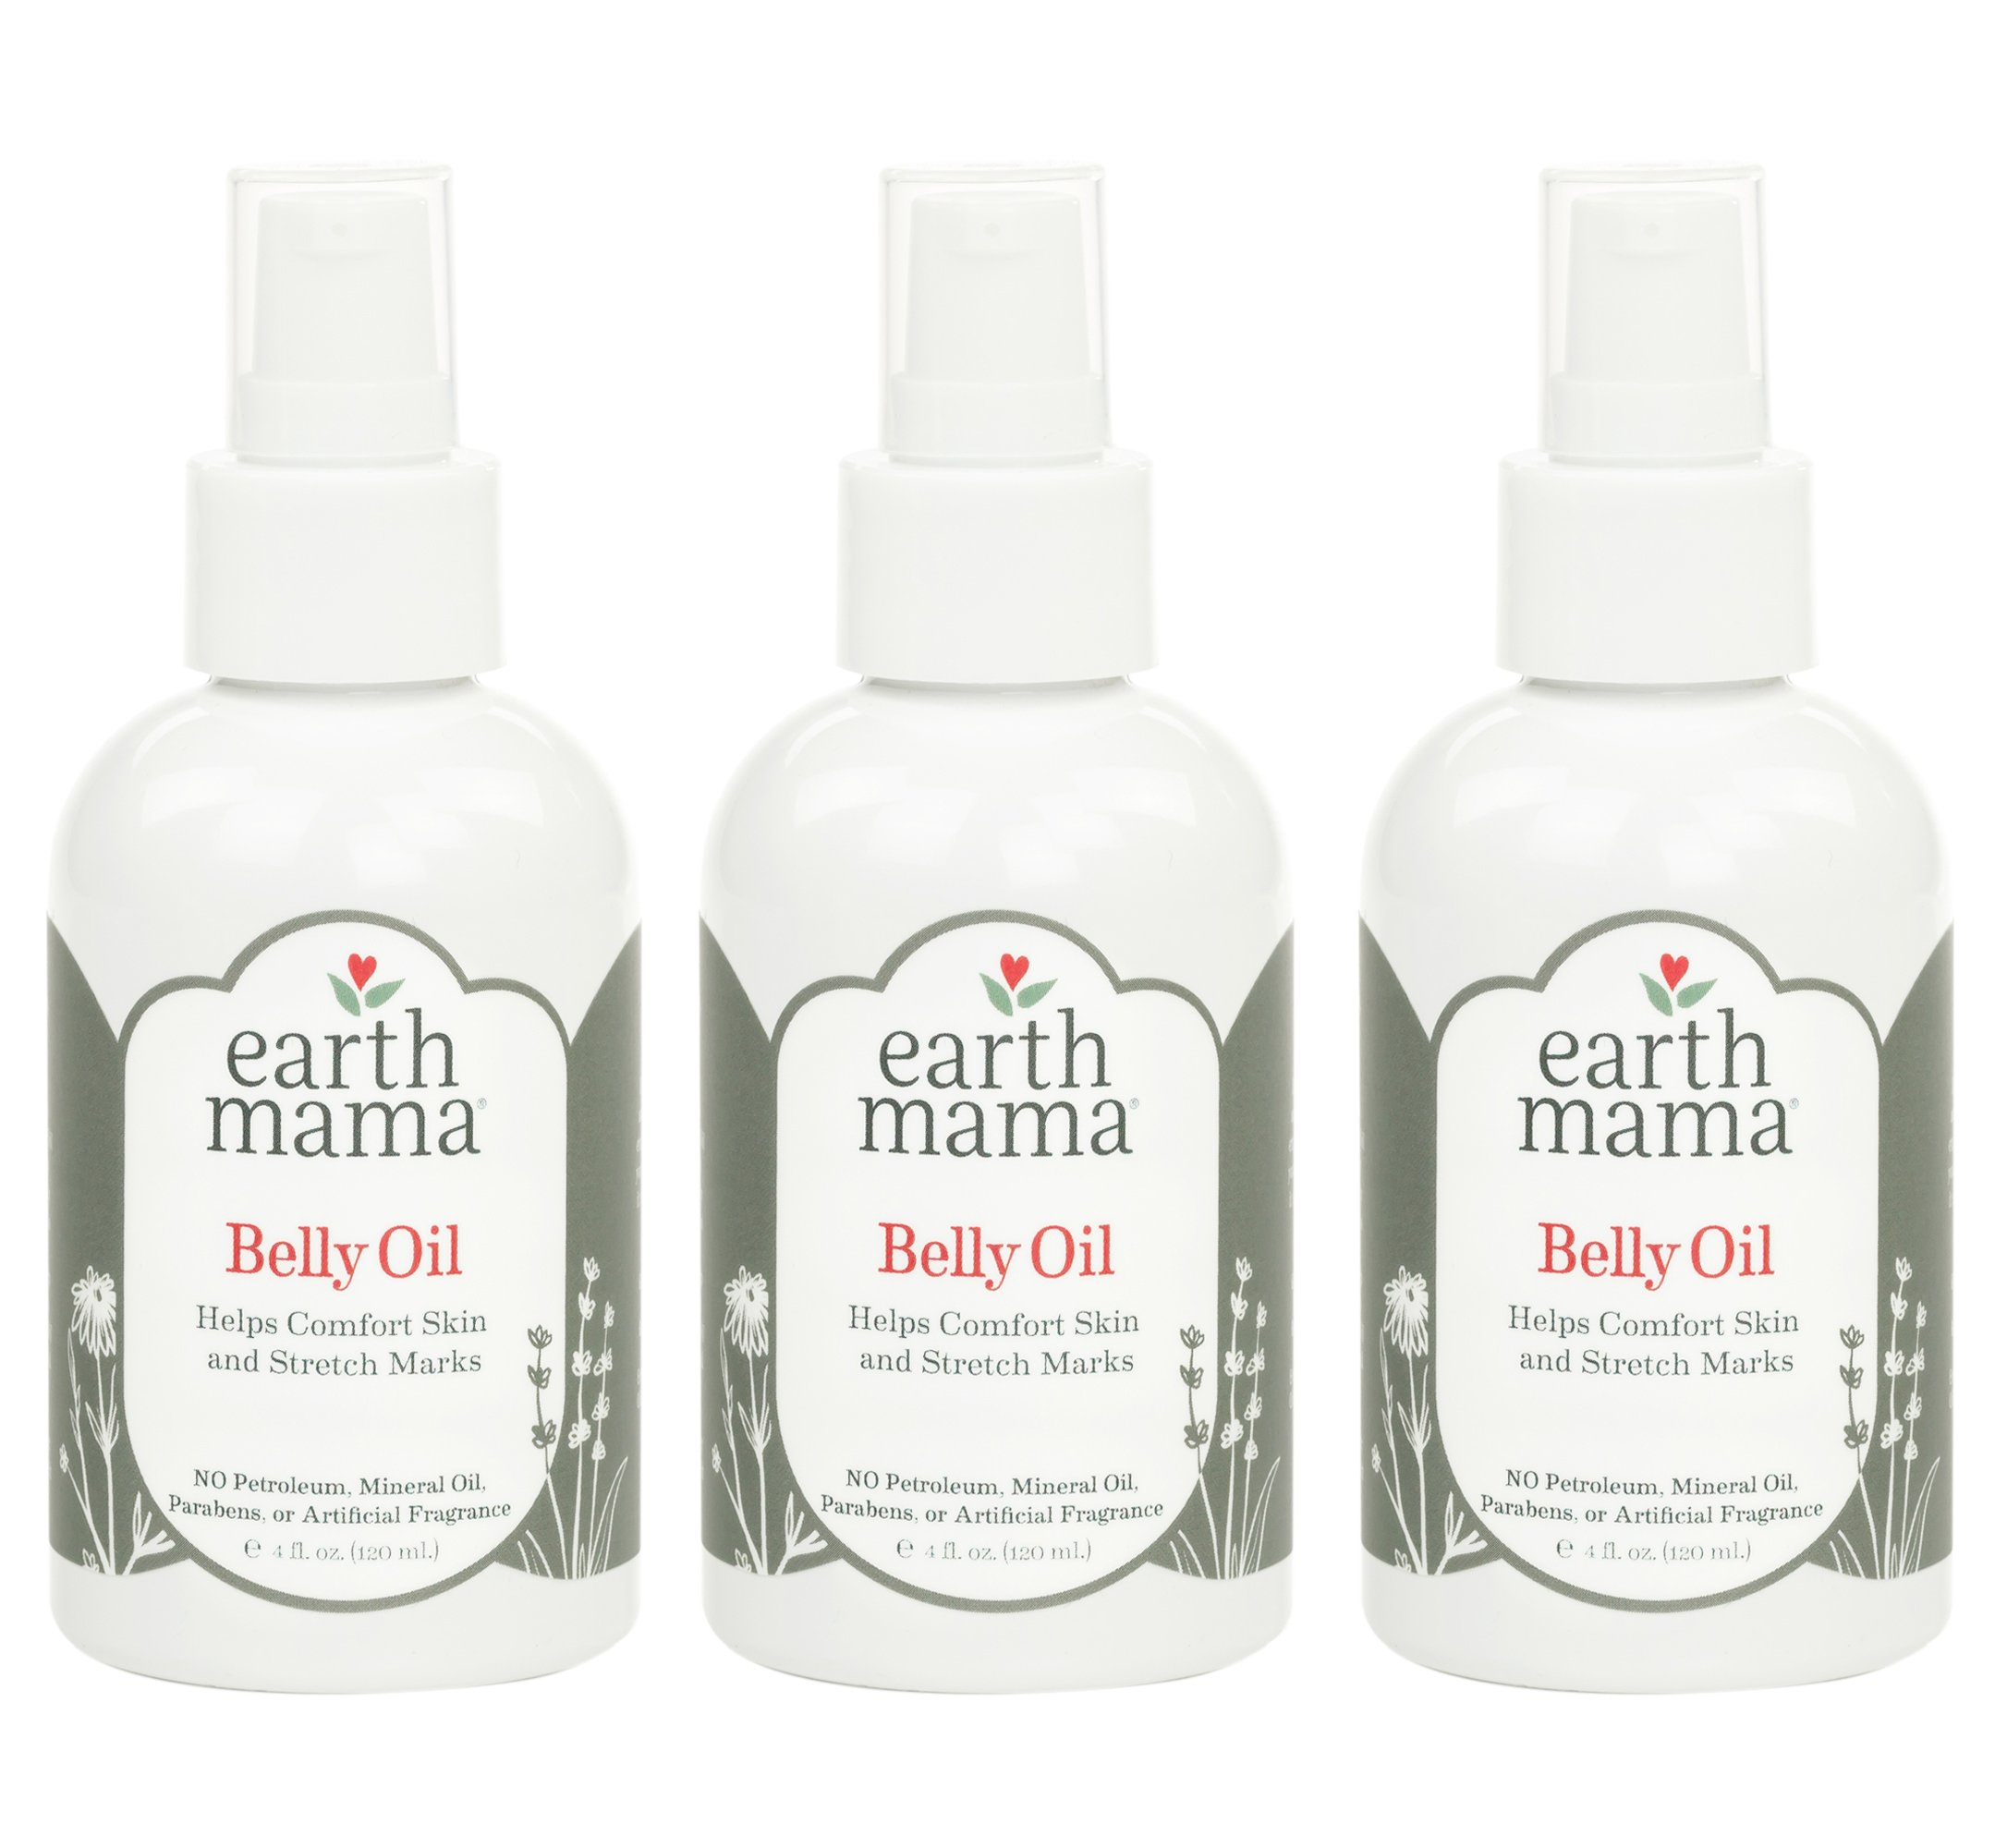 Earth Mama Belly Oil to Help Ease Skin and Stretch Marks, 4-Fluid Ounce (3-Pack)